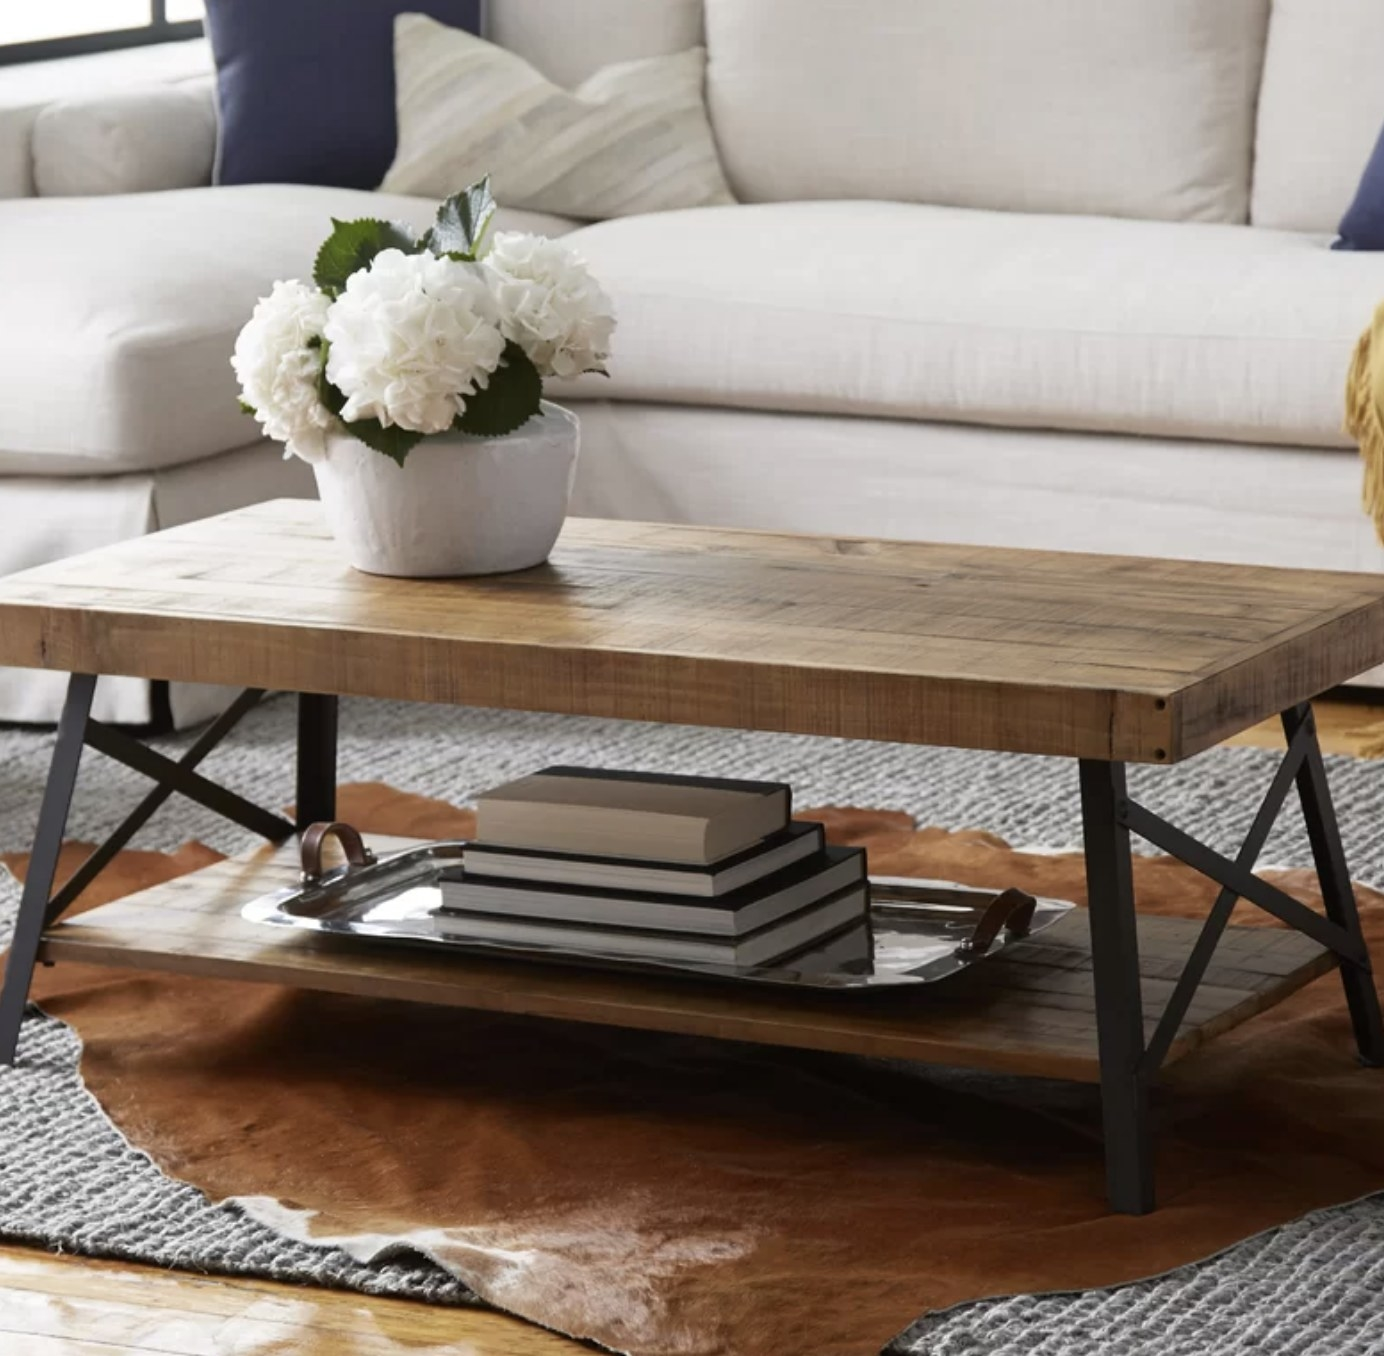 the coffee table in natural pine